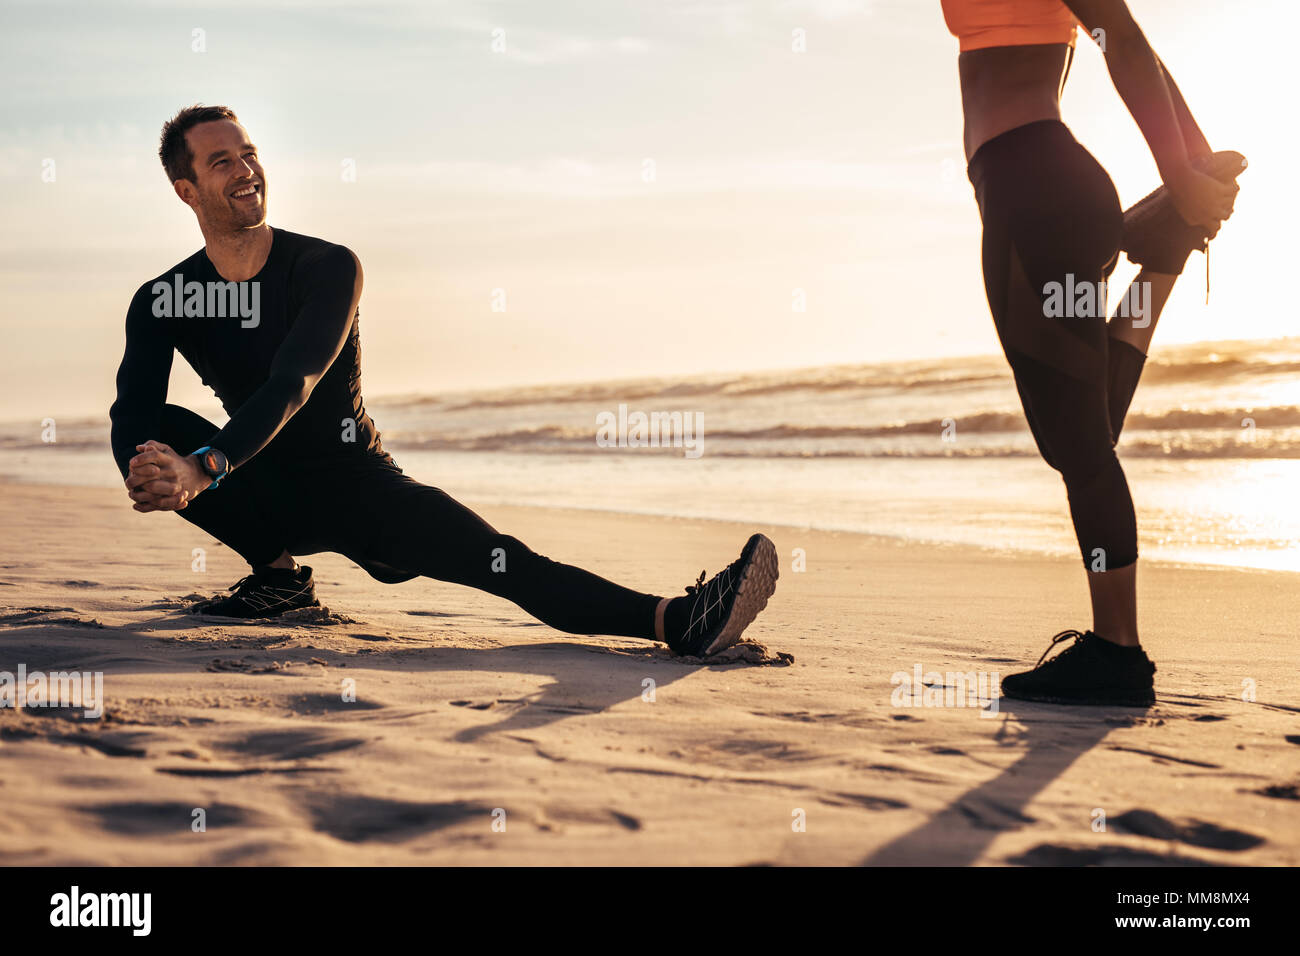 Young people exercising on the beach in morning. Runner stretching and warming up along the sea shore and having a chat. - Stock Image